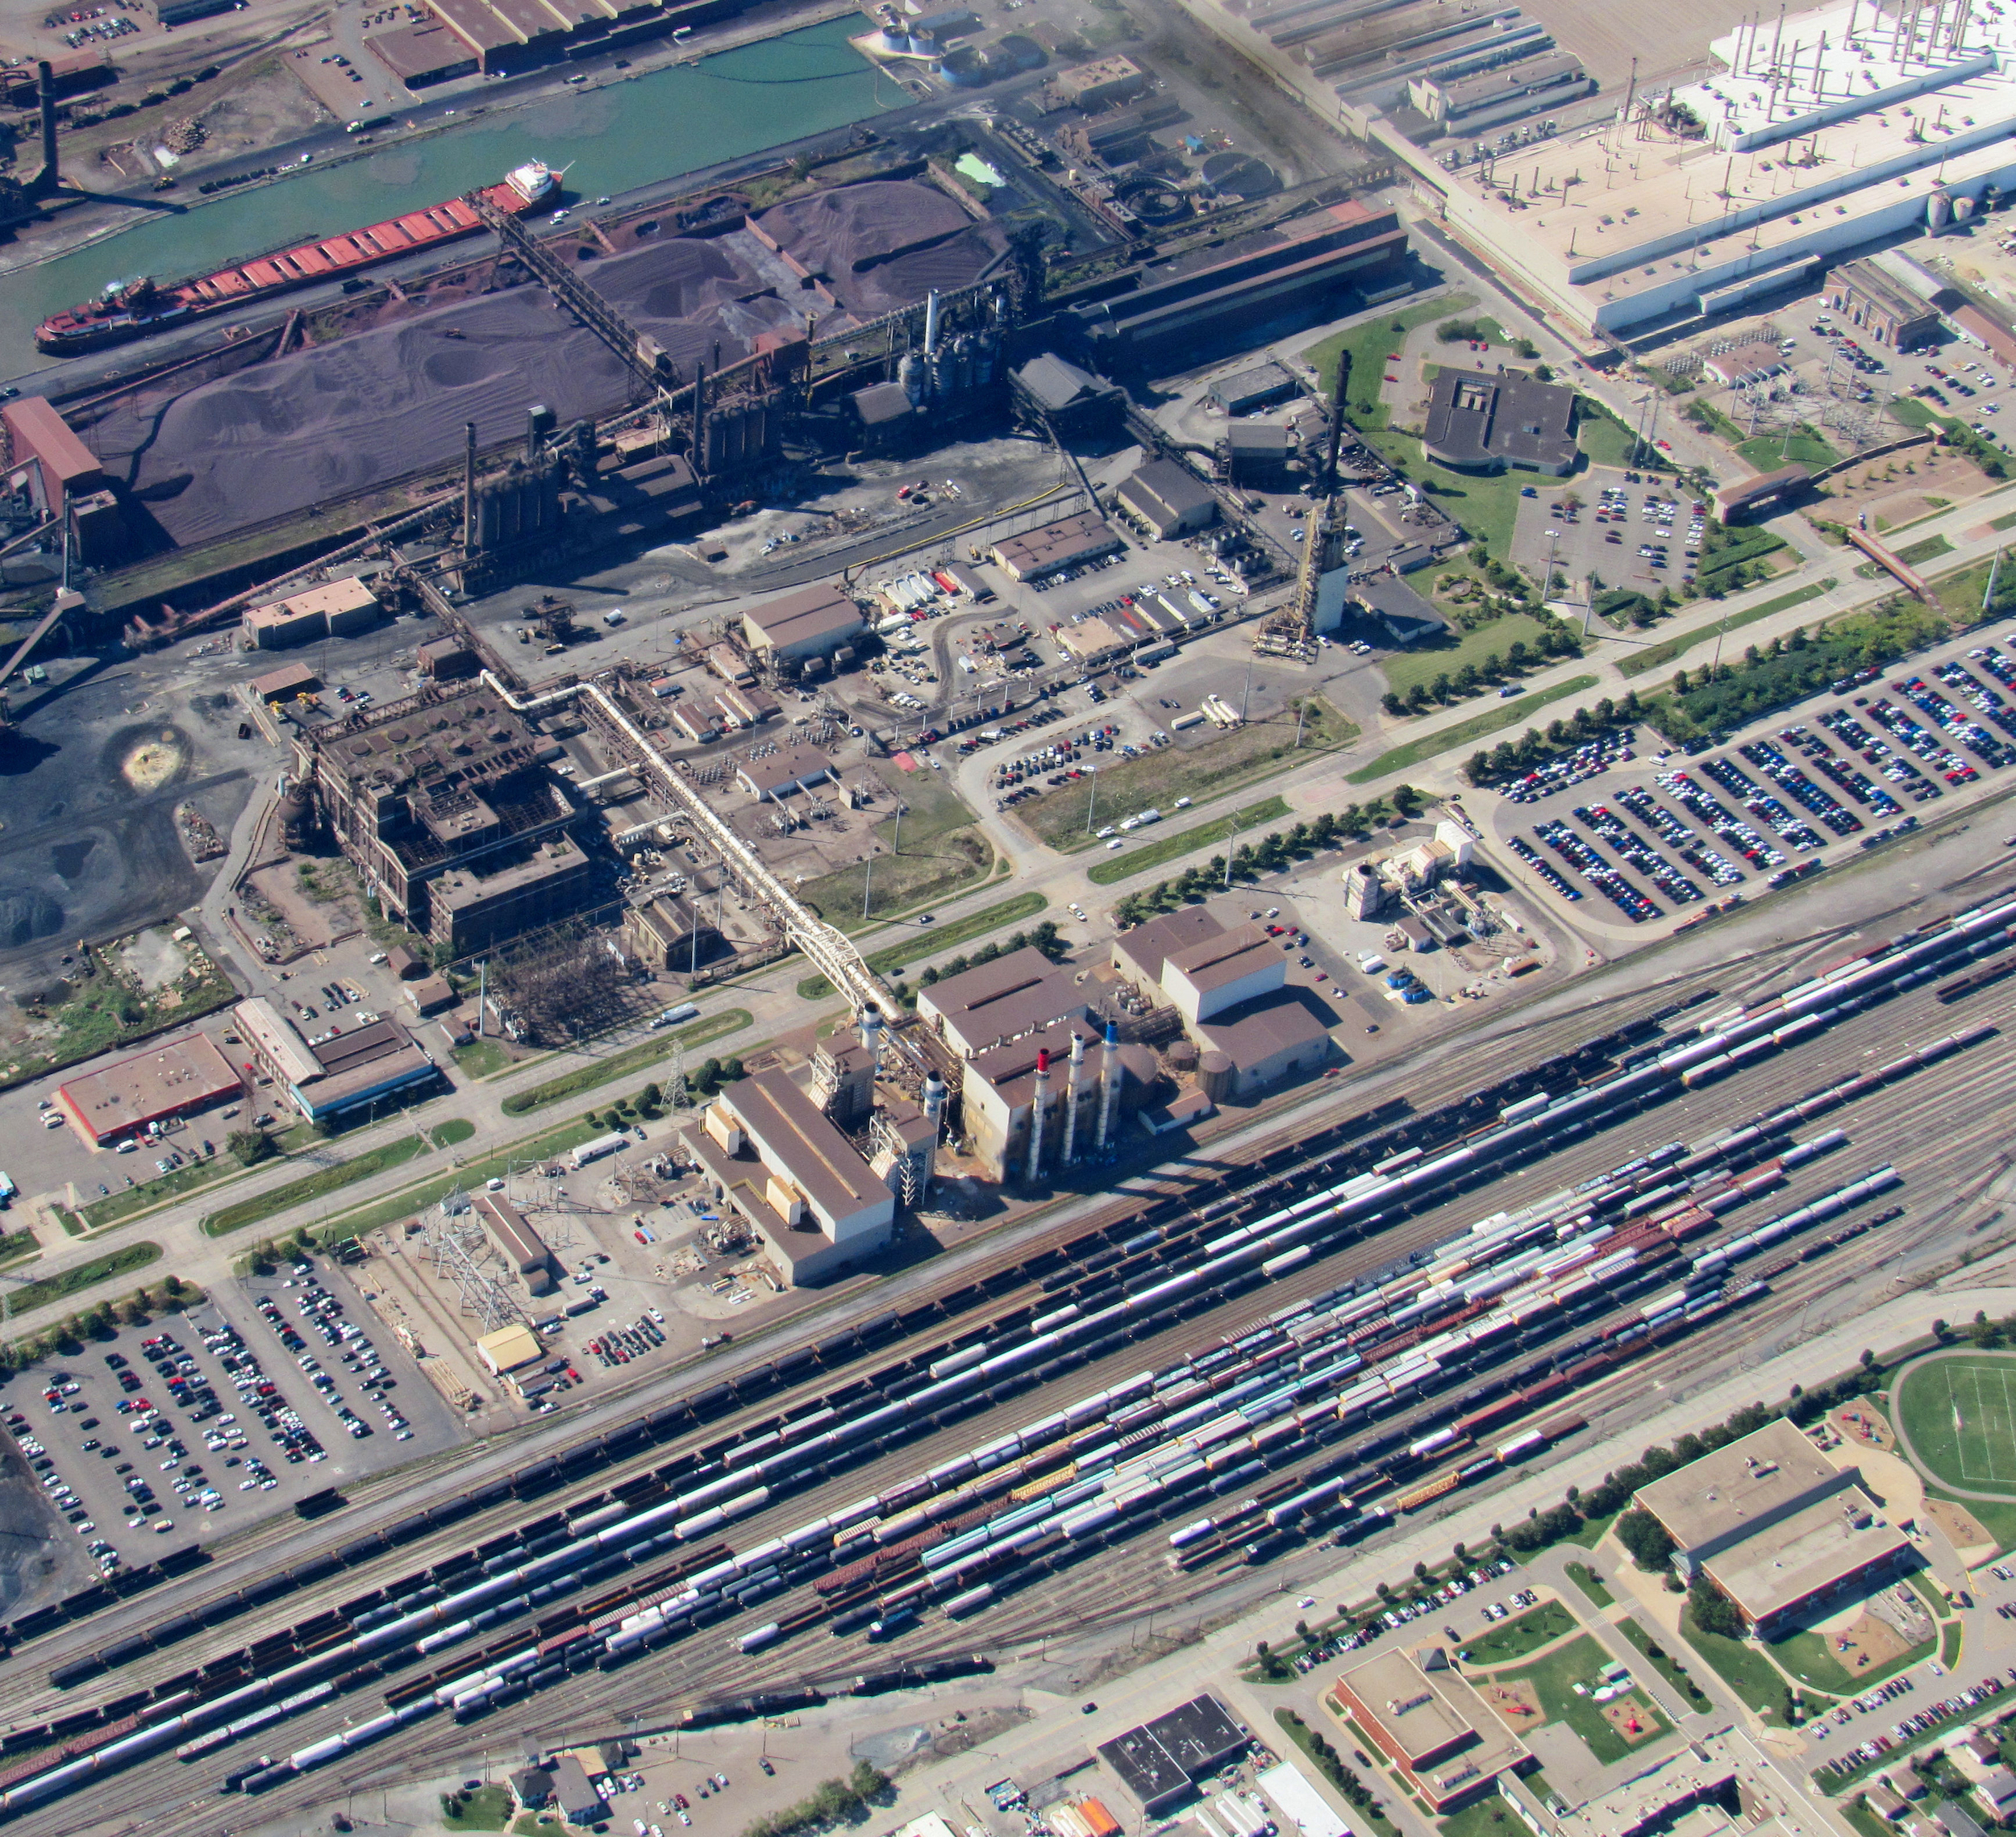 Aerial view of an industrial park with factories and a rail yard.